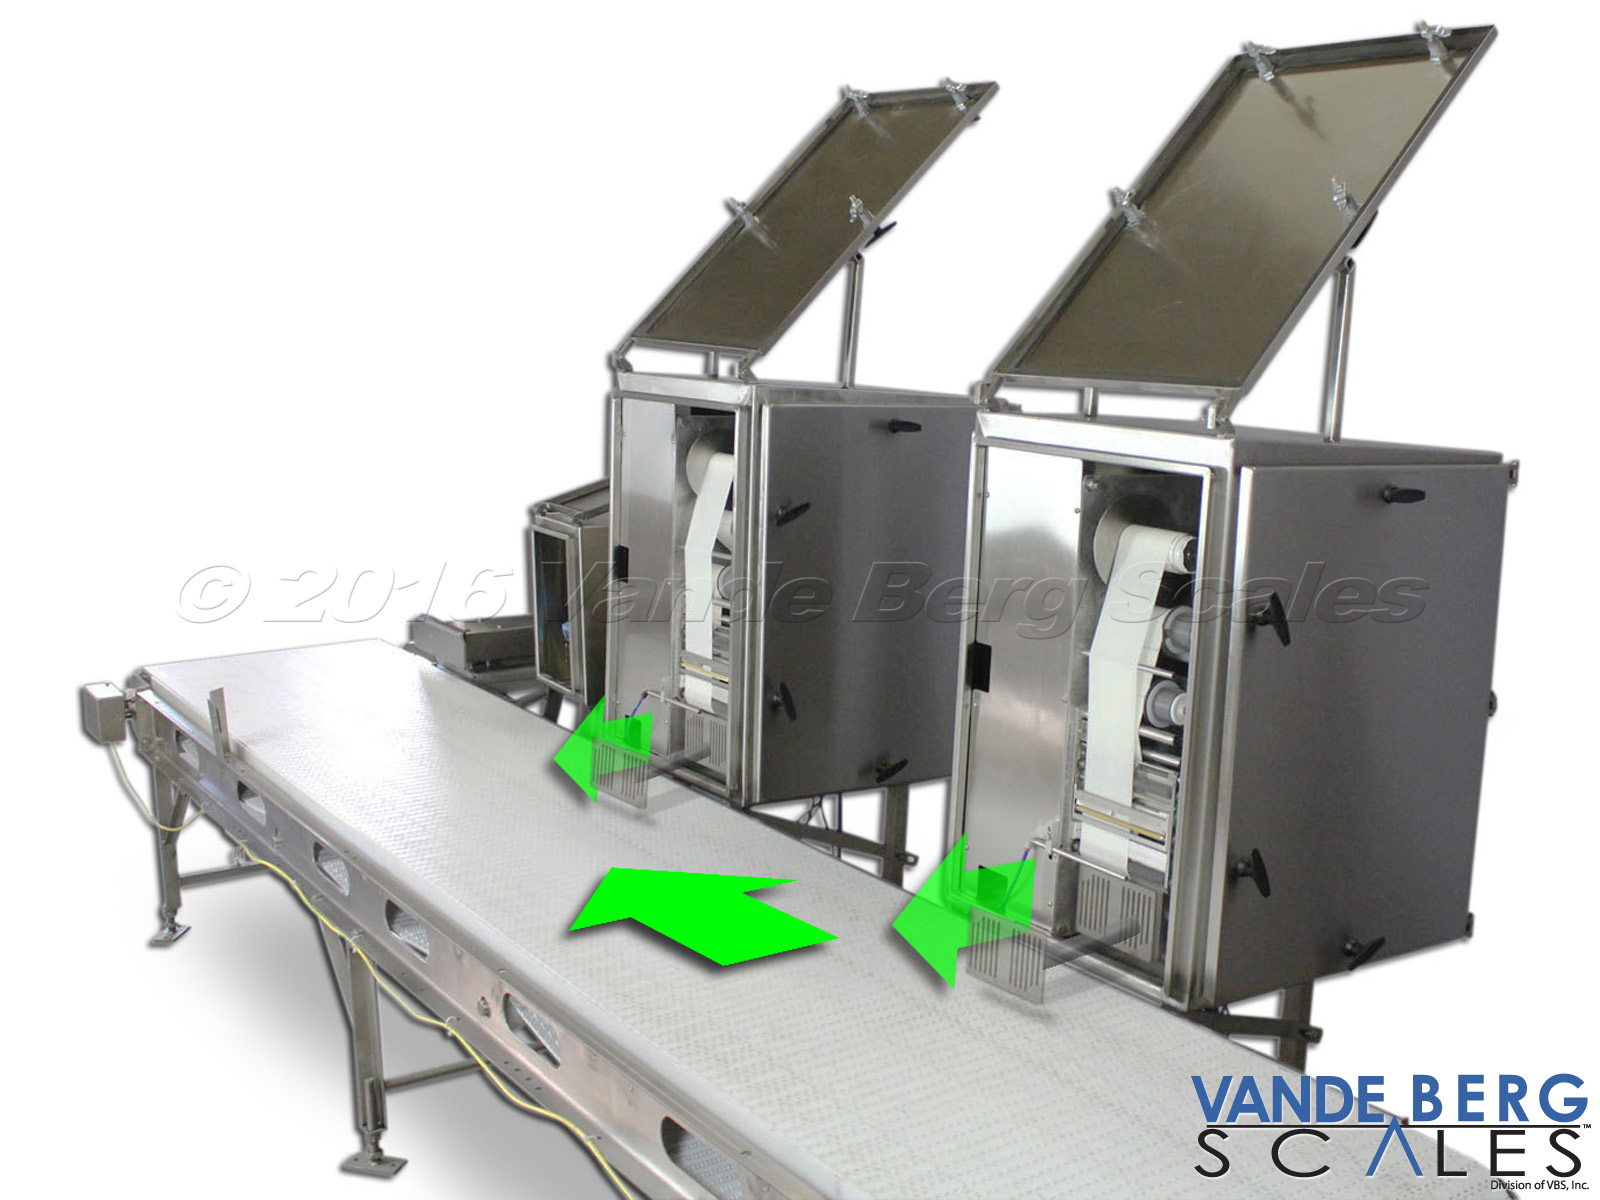 Dual Label printer-applicators enable high capacity throughput, or two different labels applied to a common side.